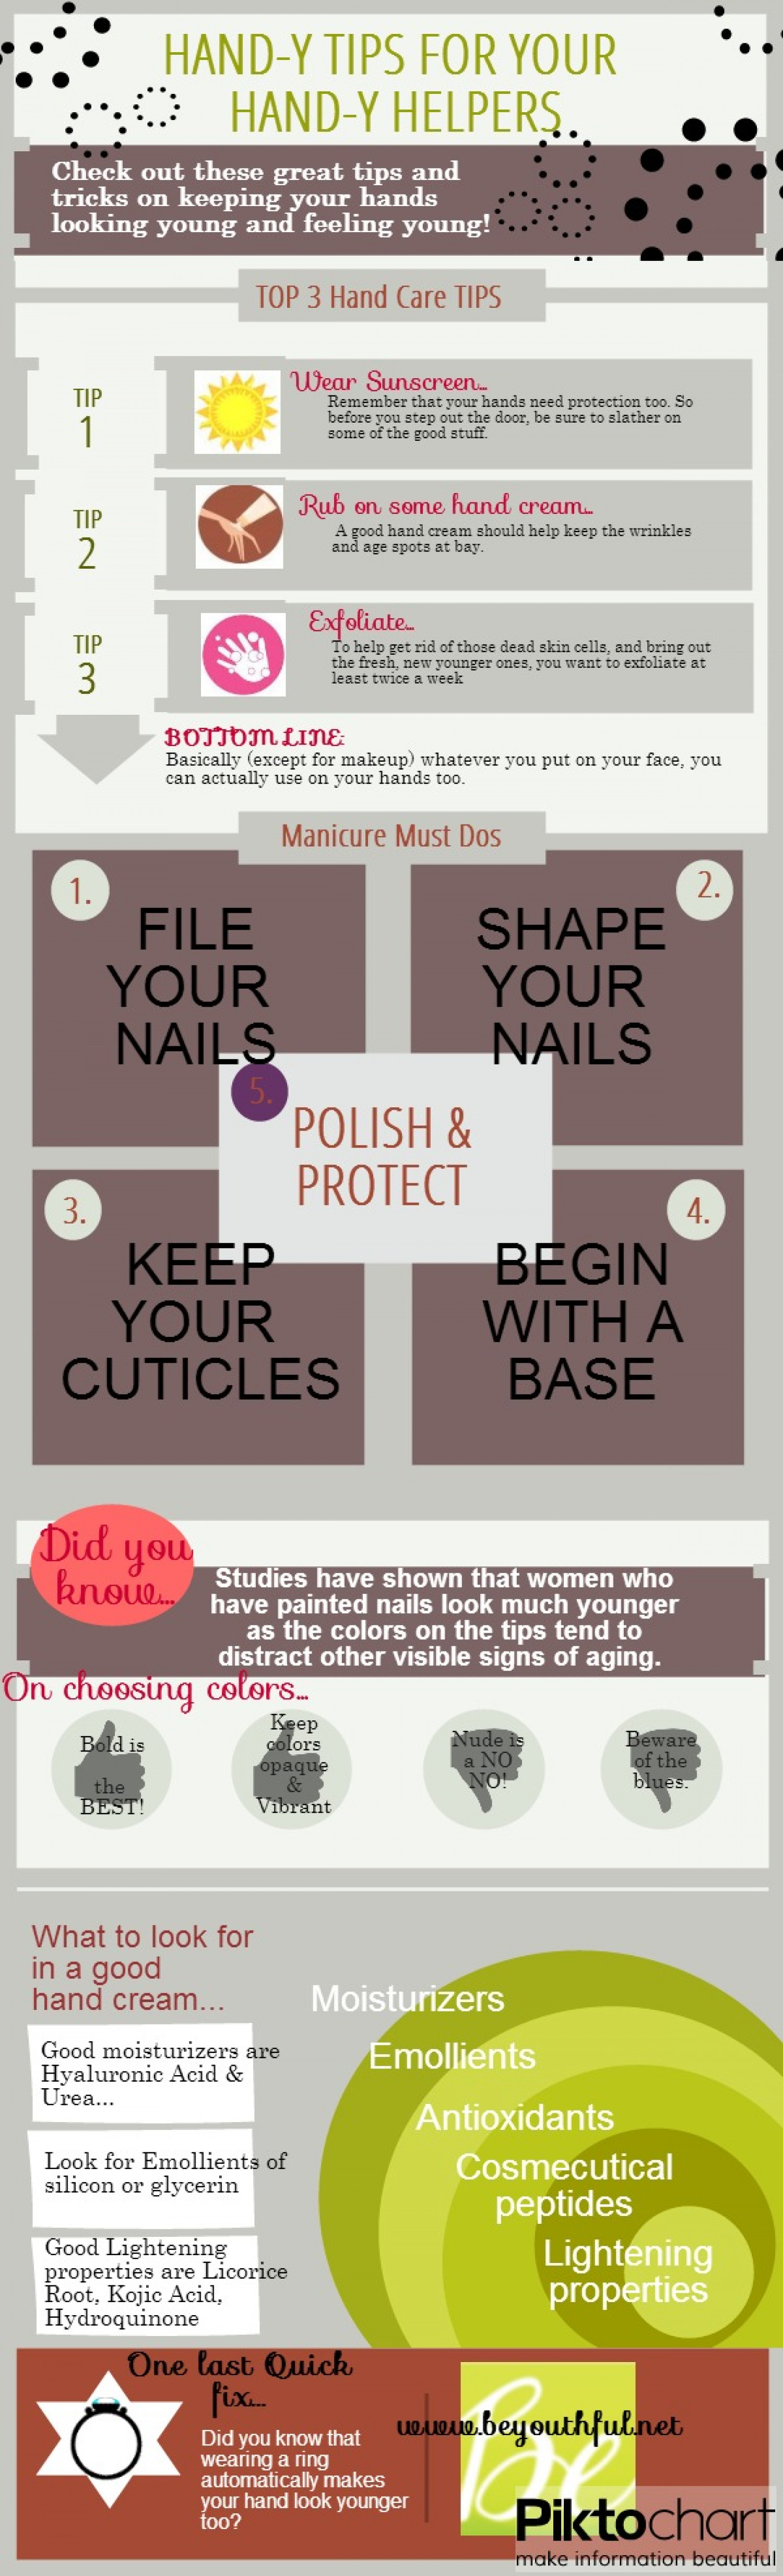 HAND-y Tips for your HAND-y Helpers Infographic